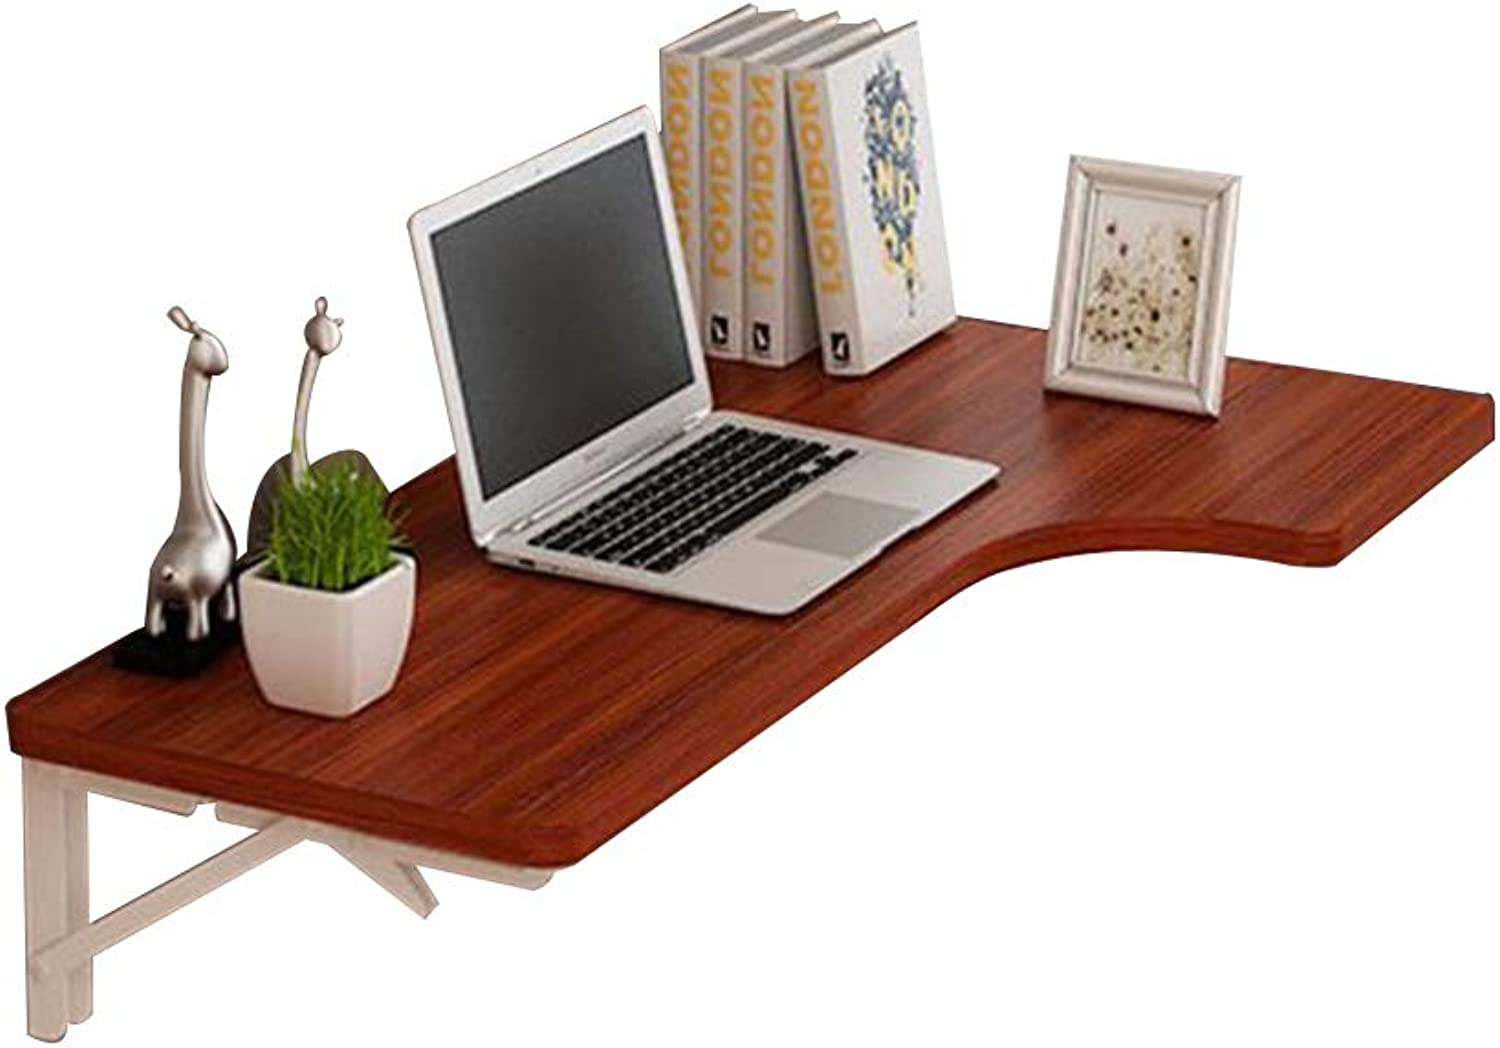 Virod-Desks Corner Folding Table, Drop-Leaf Table Wall-Mounted Dining Table Wall Hanging Computer Desk, 7 Size Modern Style (Size   80  60 cm)